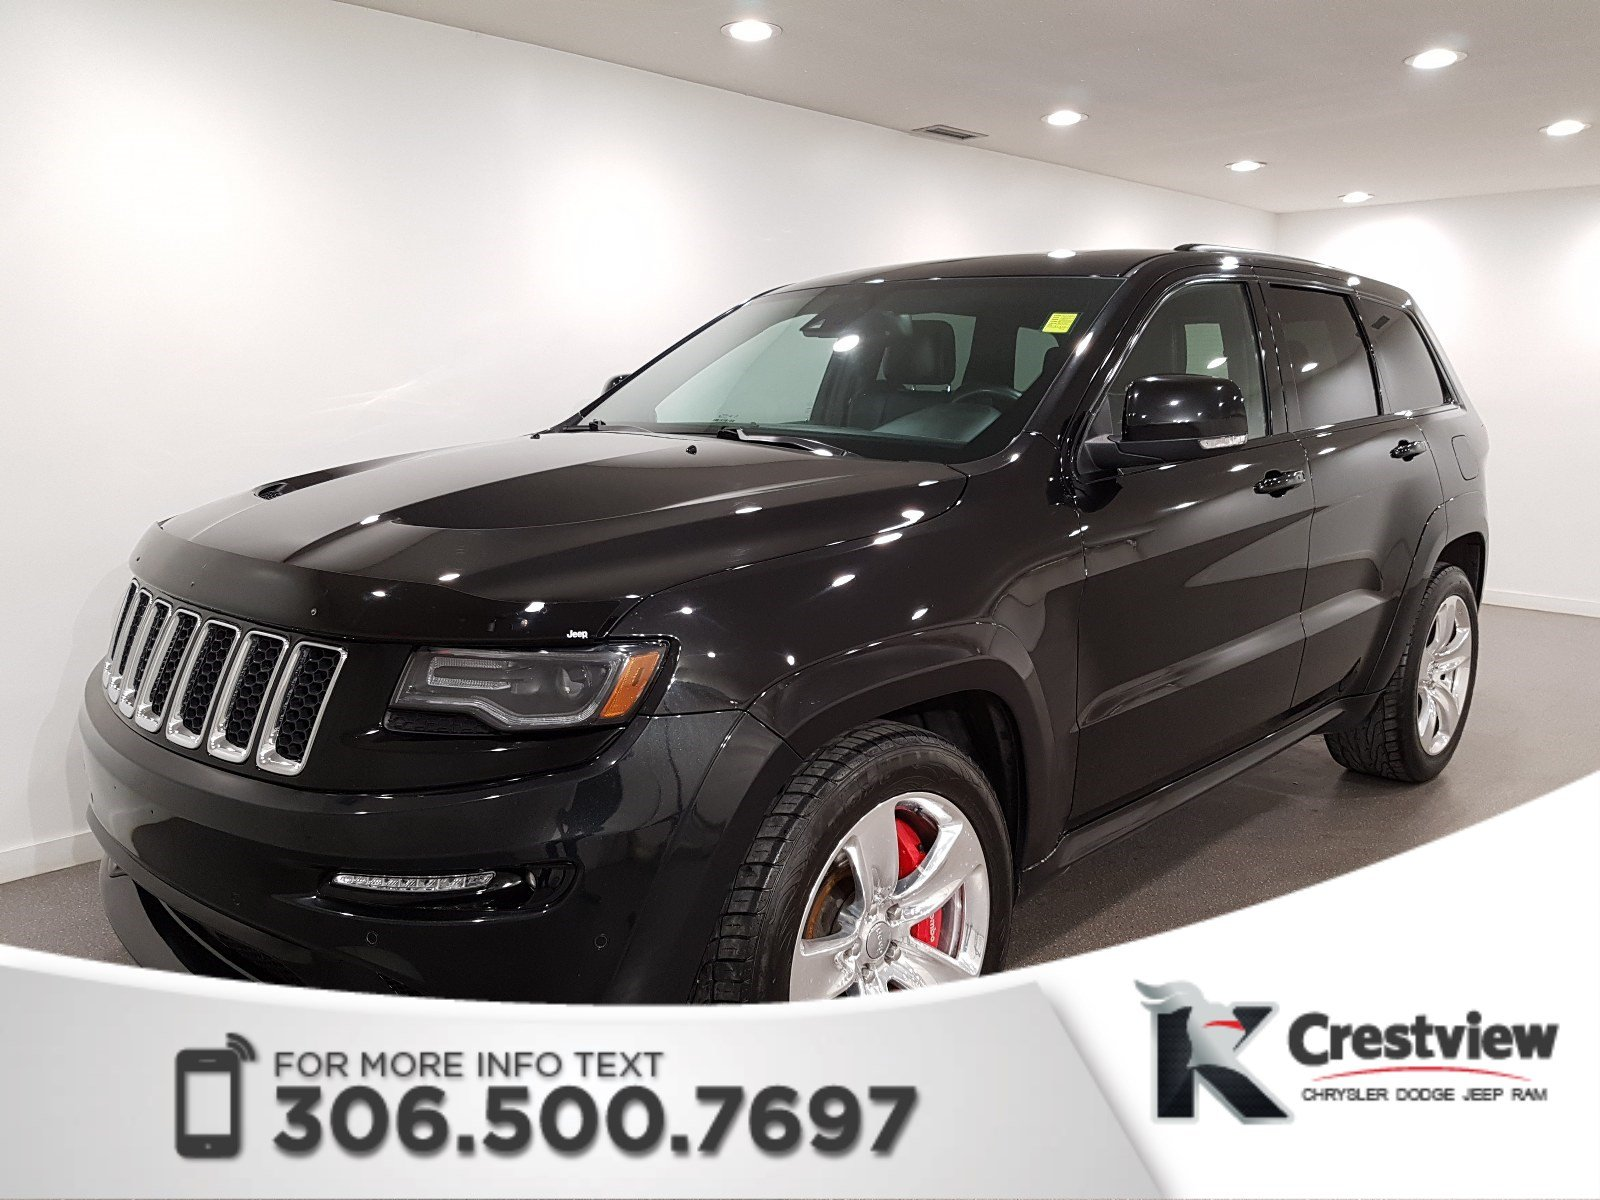 Certified Pre Owned 2014 Jeep Grand Cherokee SRT8 6.4L Hemi | Sunroof |  Navigation